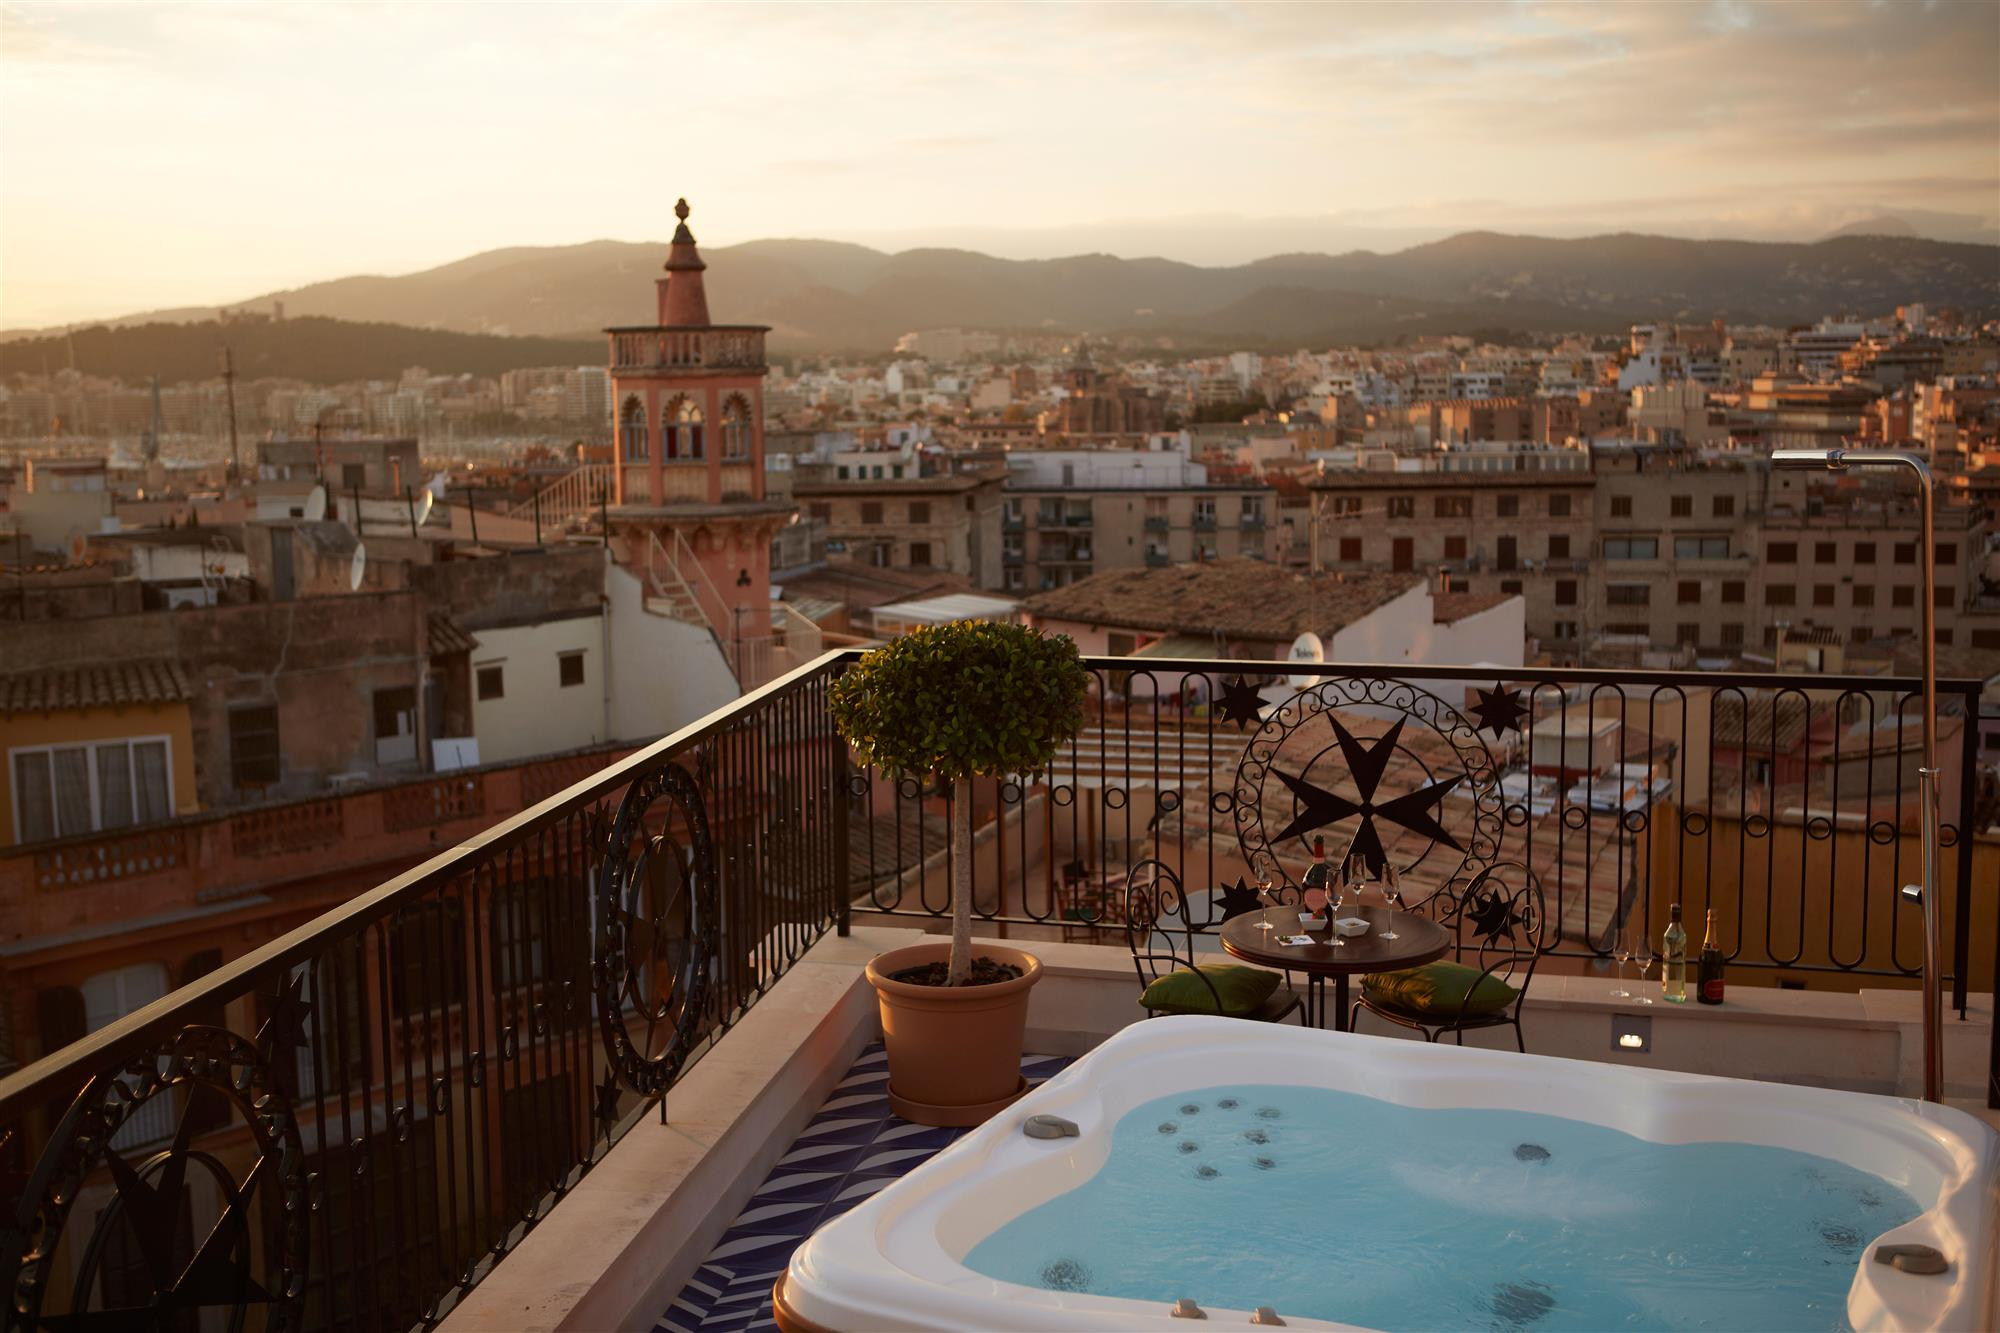 Hotel Cort Mallorca Rooftop-terrace-Island-Suite. Hotel Cort